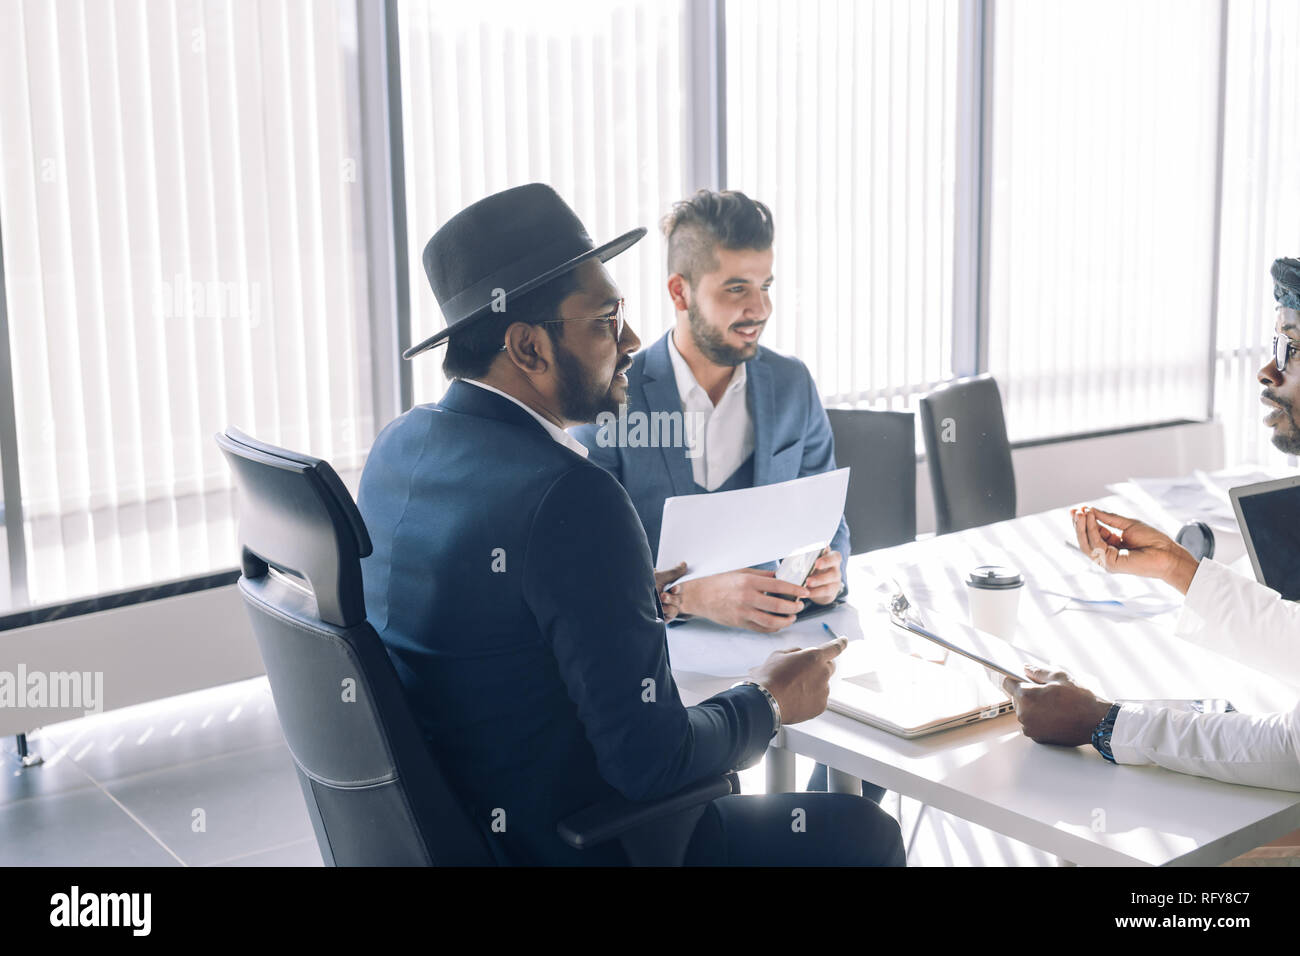 Elegant multiracial businessmen in suits gathered together for negotiating - Stock Image